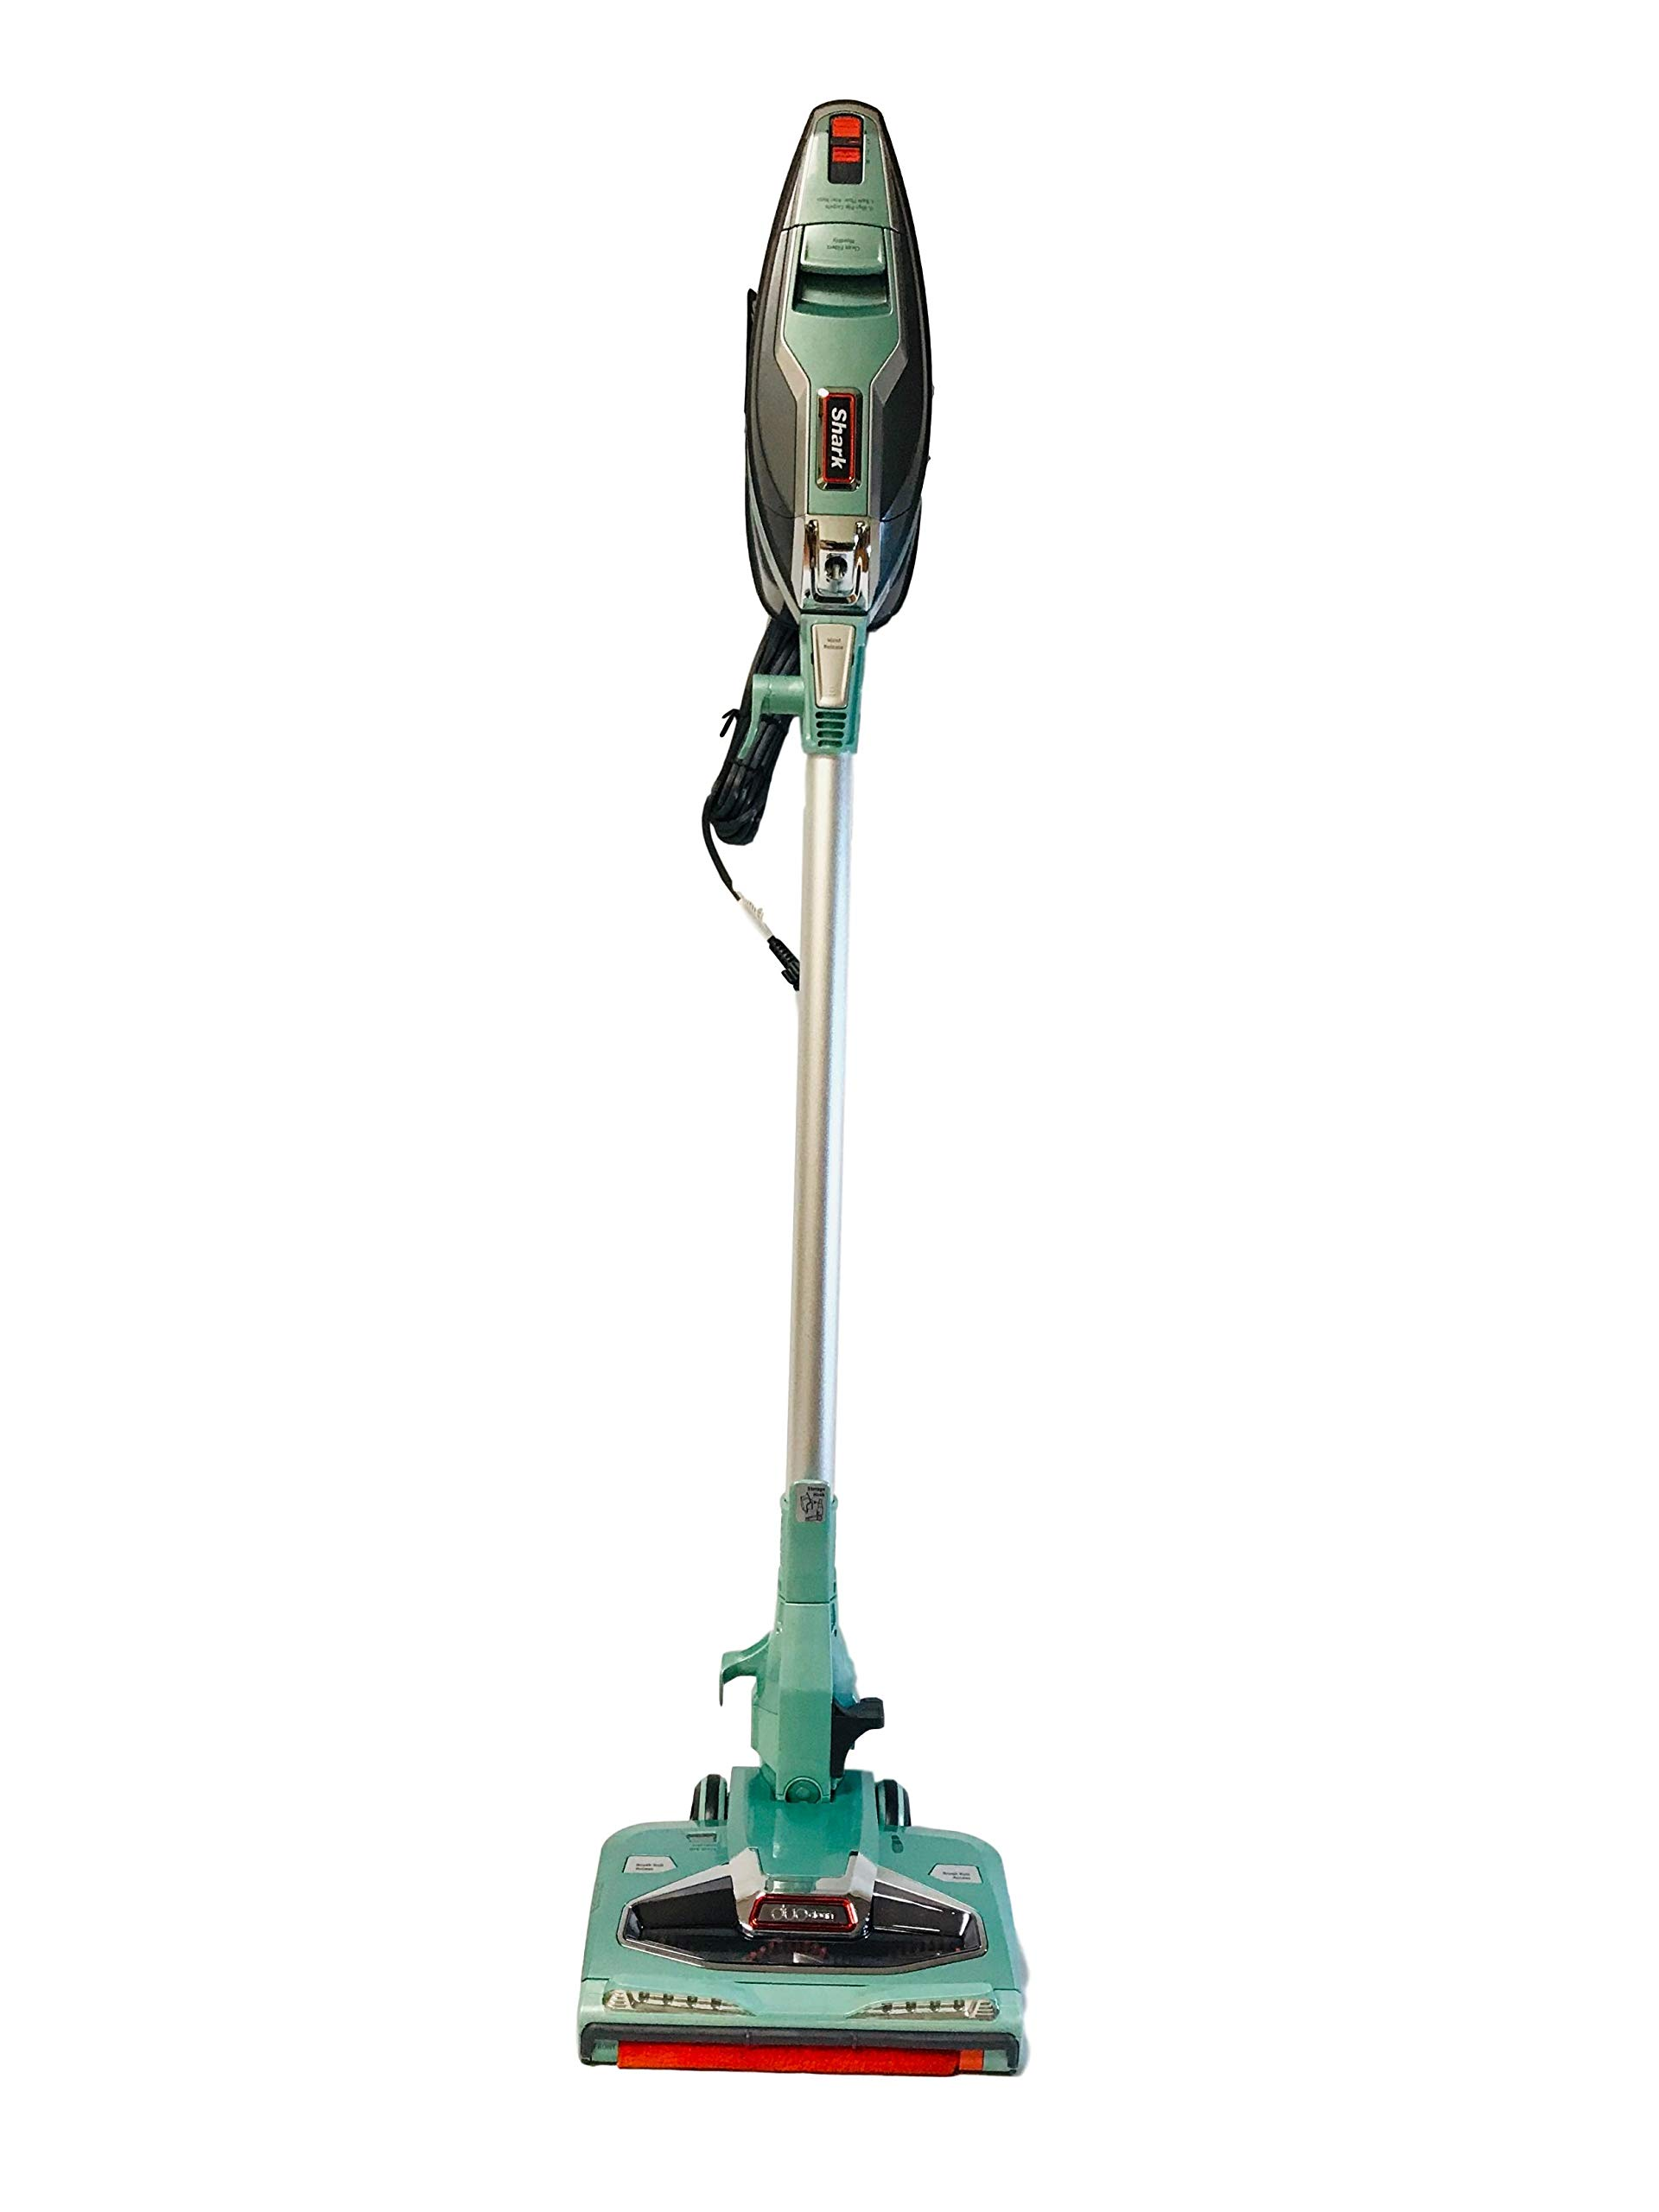 Shark Rocket DuoClean Ultra-Light Corded Stick Vacuum with DuoClean TechnologyHV384Q (Mint Green) Bagless | LED Lights | Pet Grooming Tool | Lift-Away Hand Vacuum (Renewed)